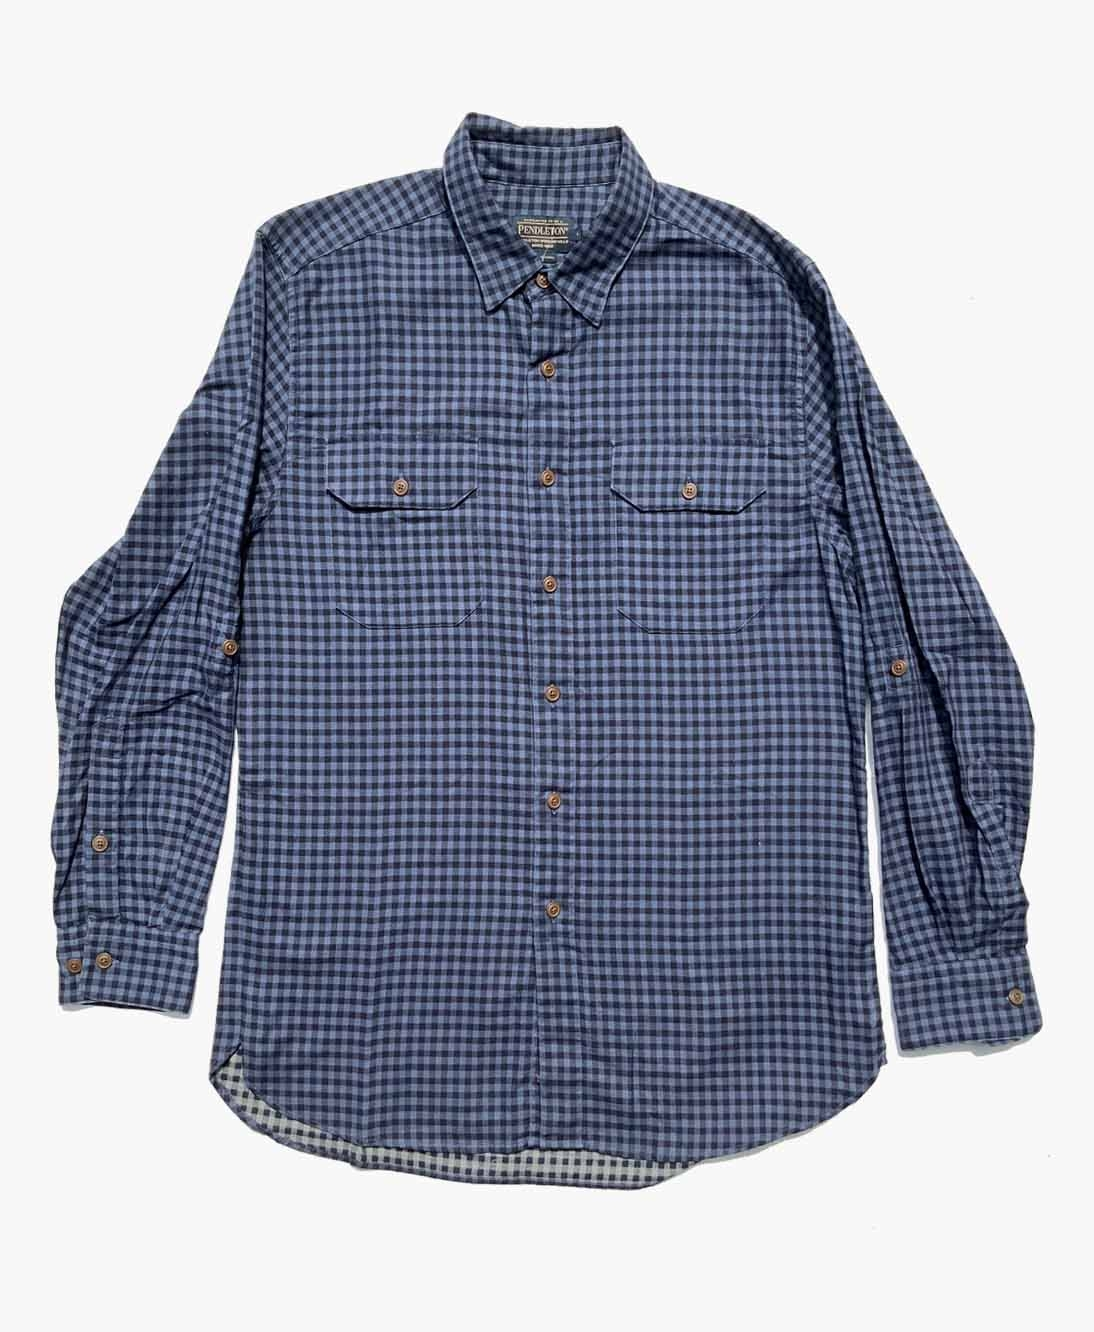 Pendleton - Fitter Fairbanks Regular Fit Shirt